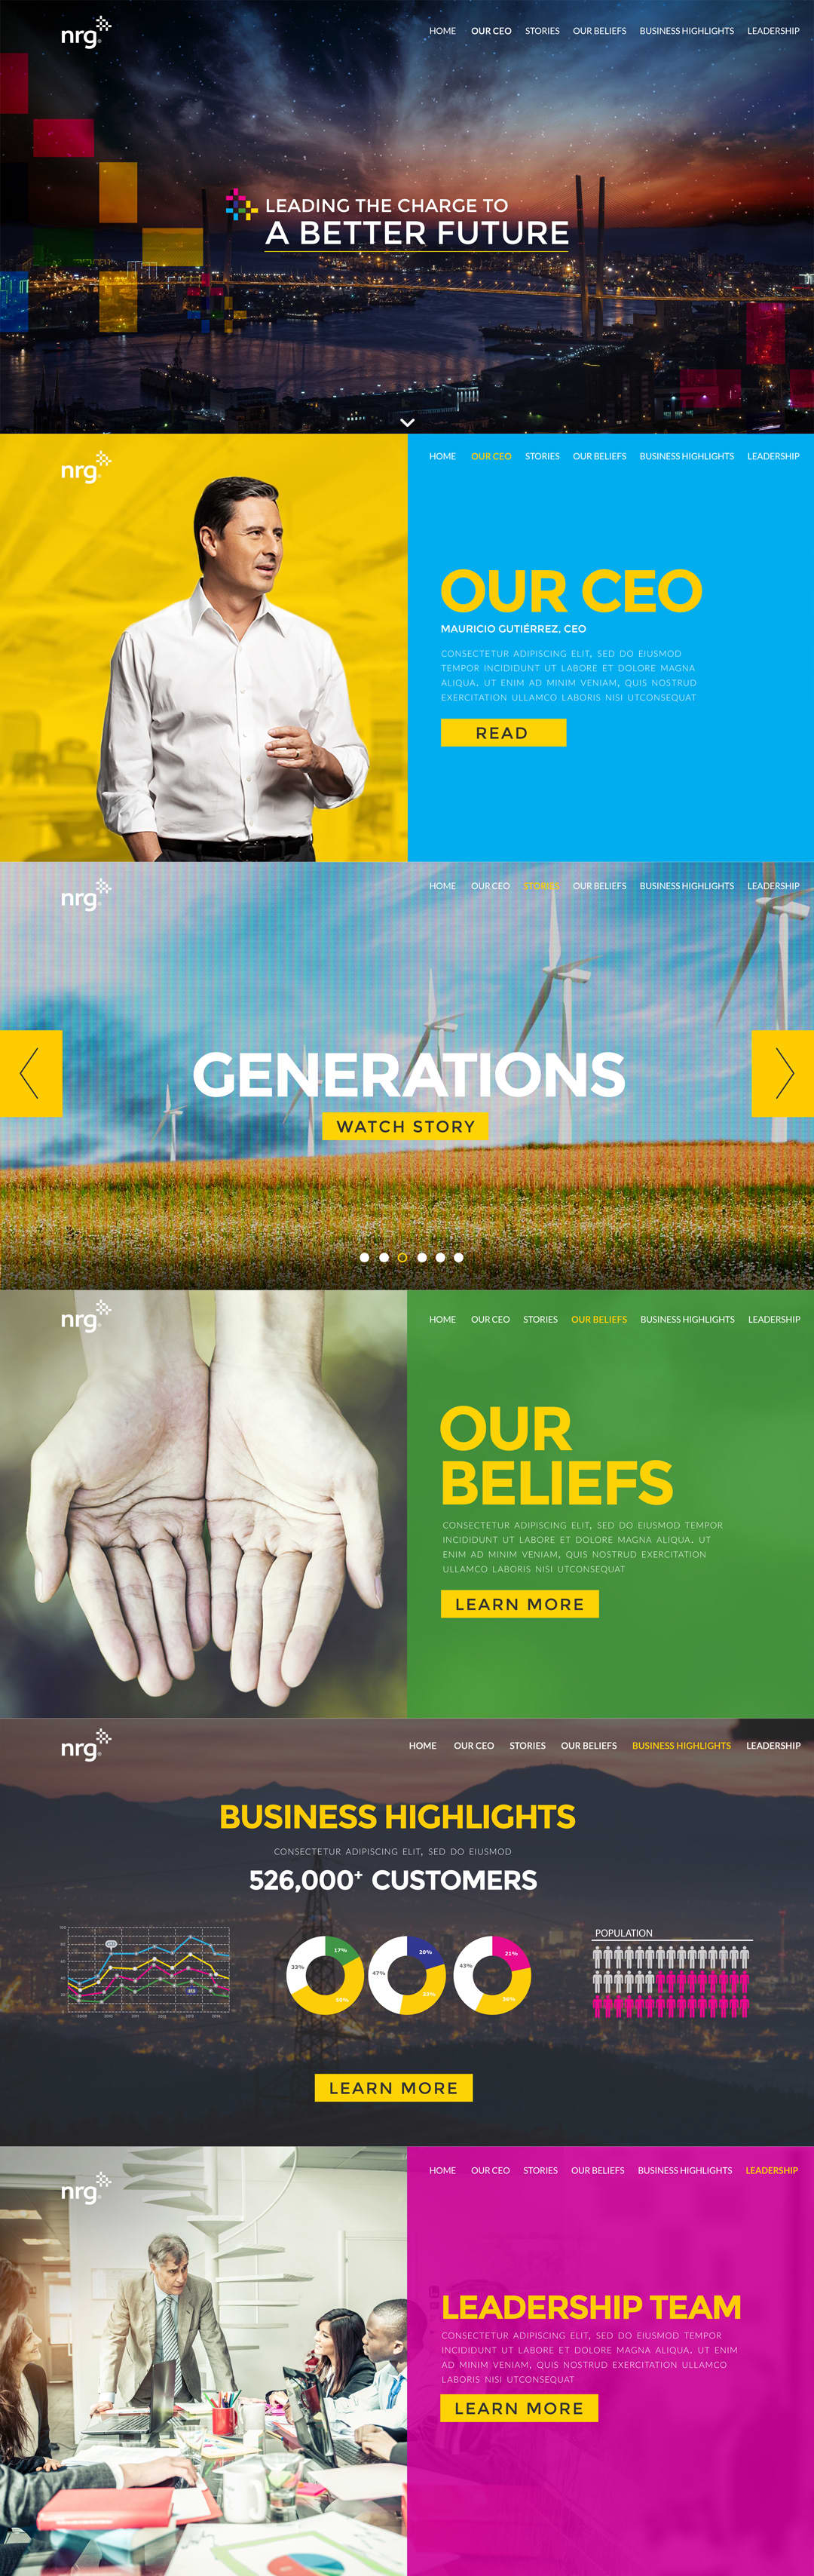 """NRG Energy """"Better Future"""" Campaign"""